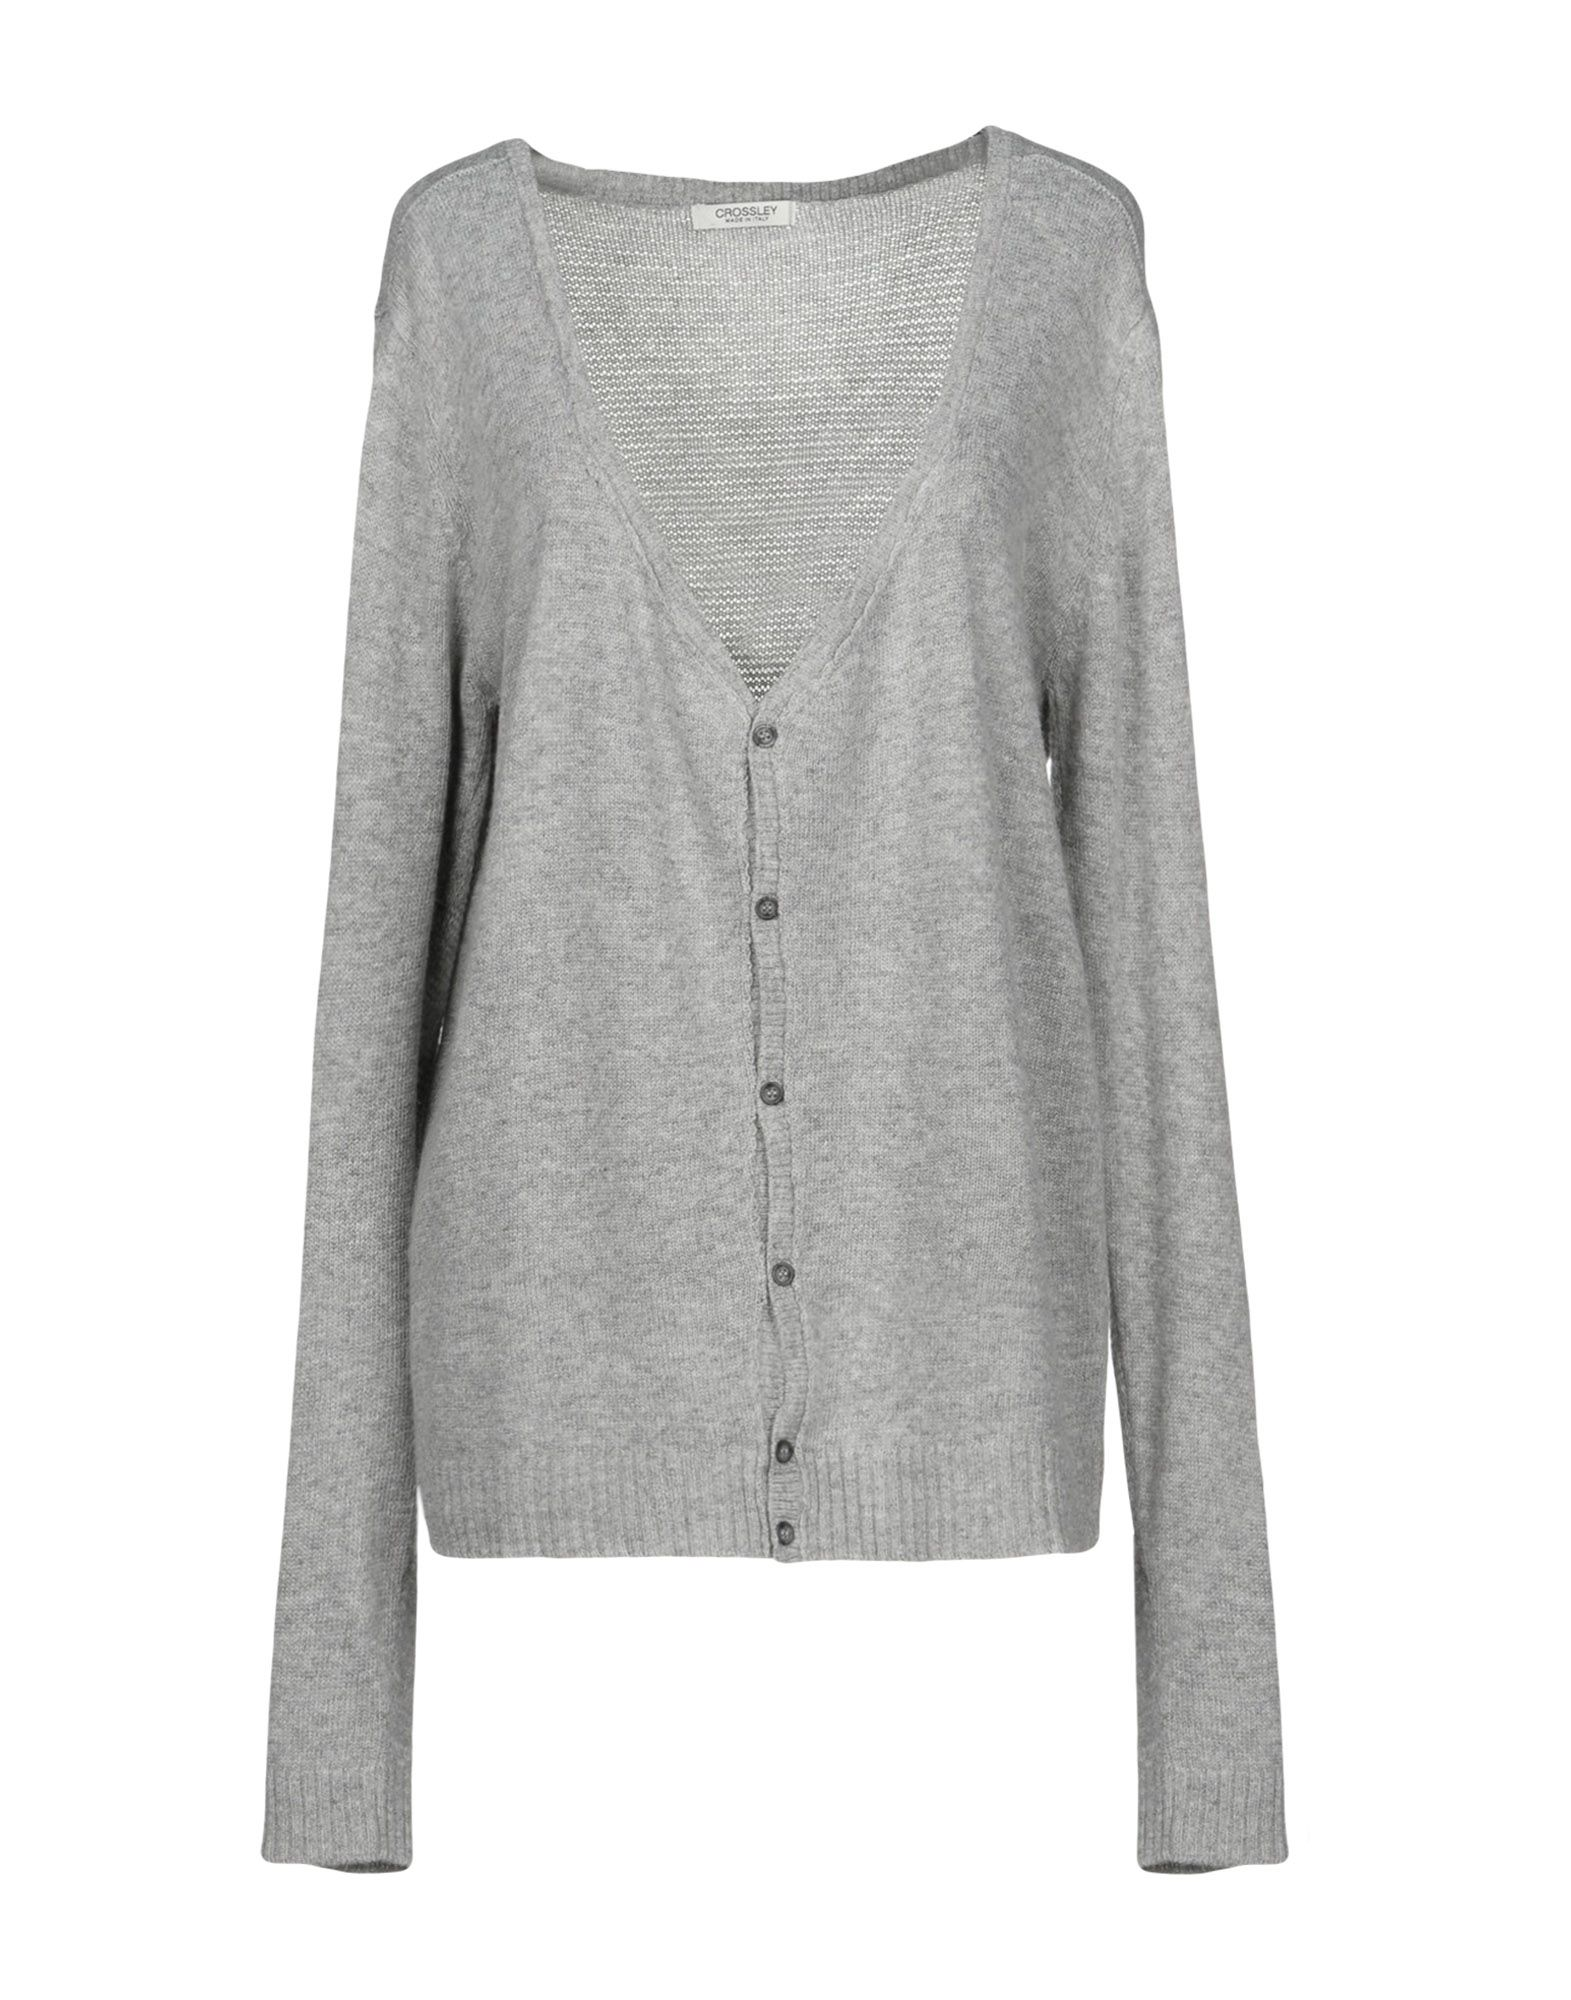 Cardigan Crossley Donna - Acquista online su sbxs1Uyz